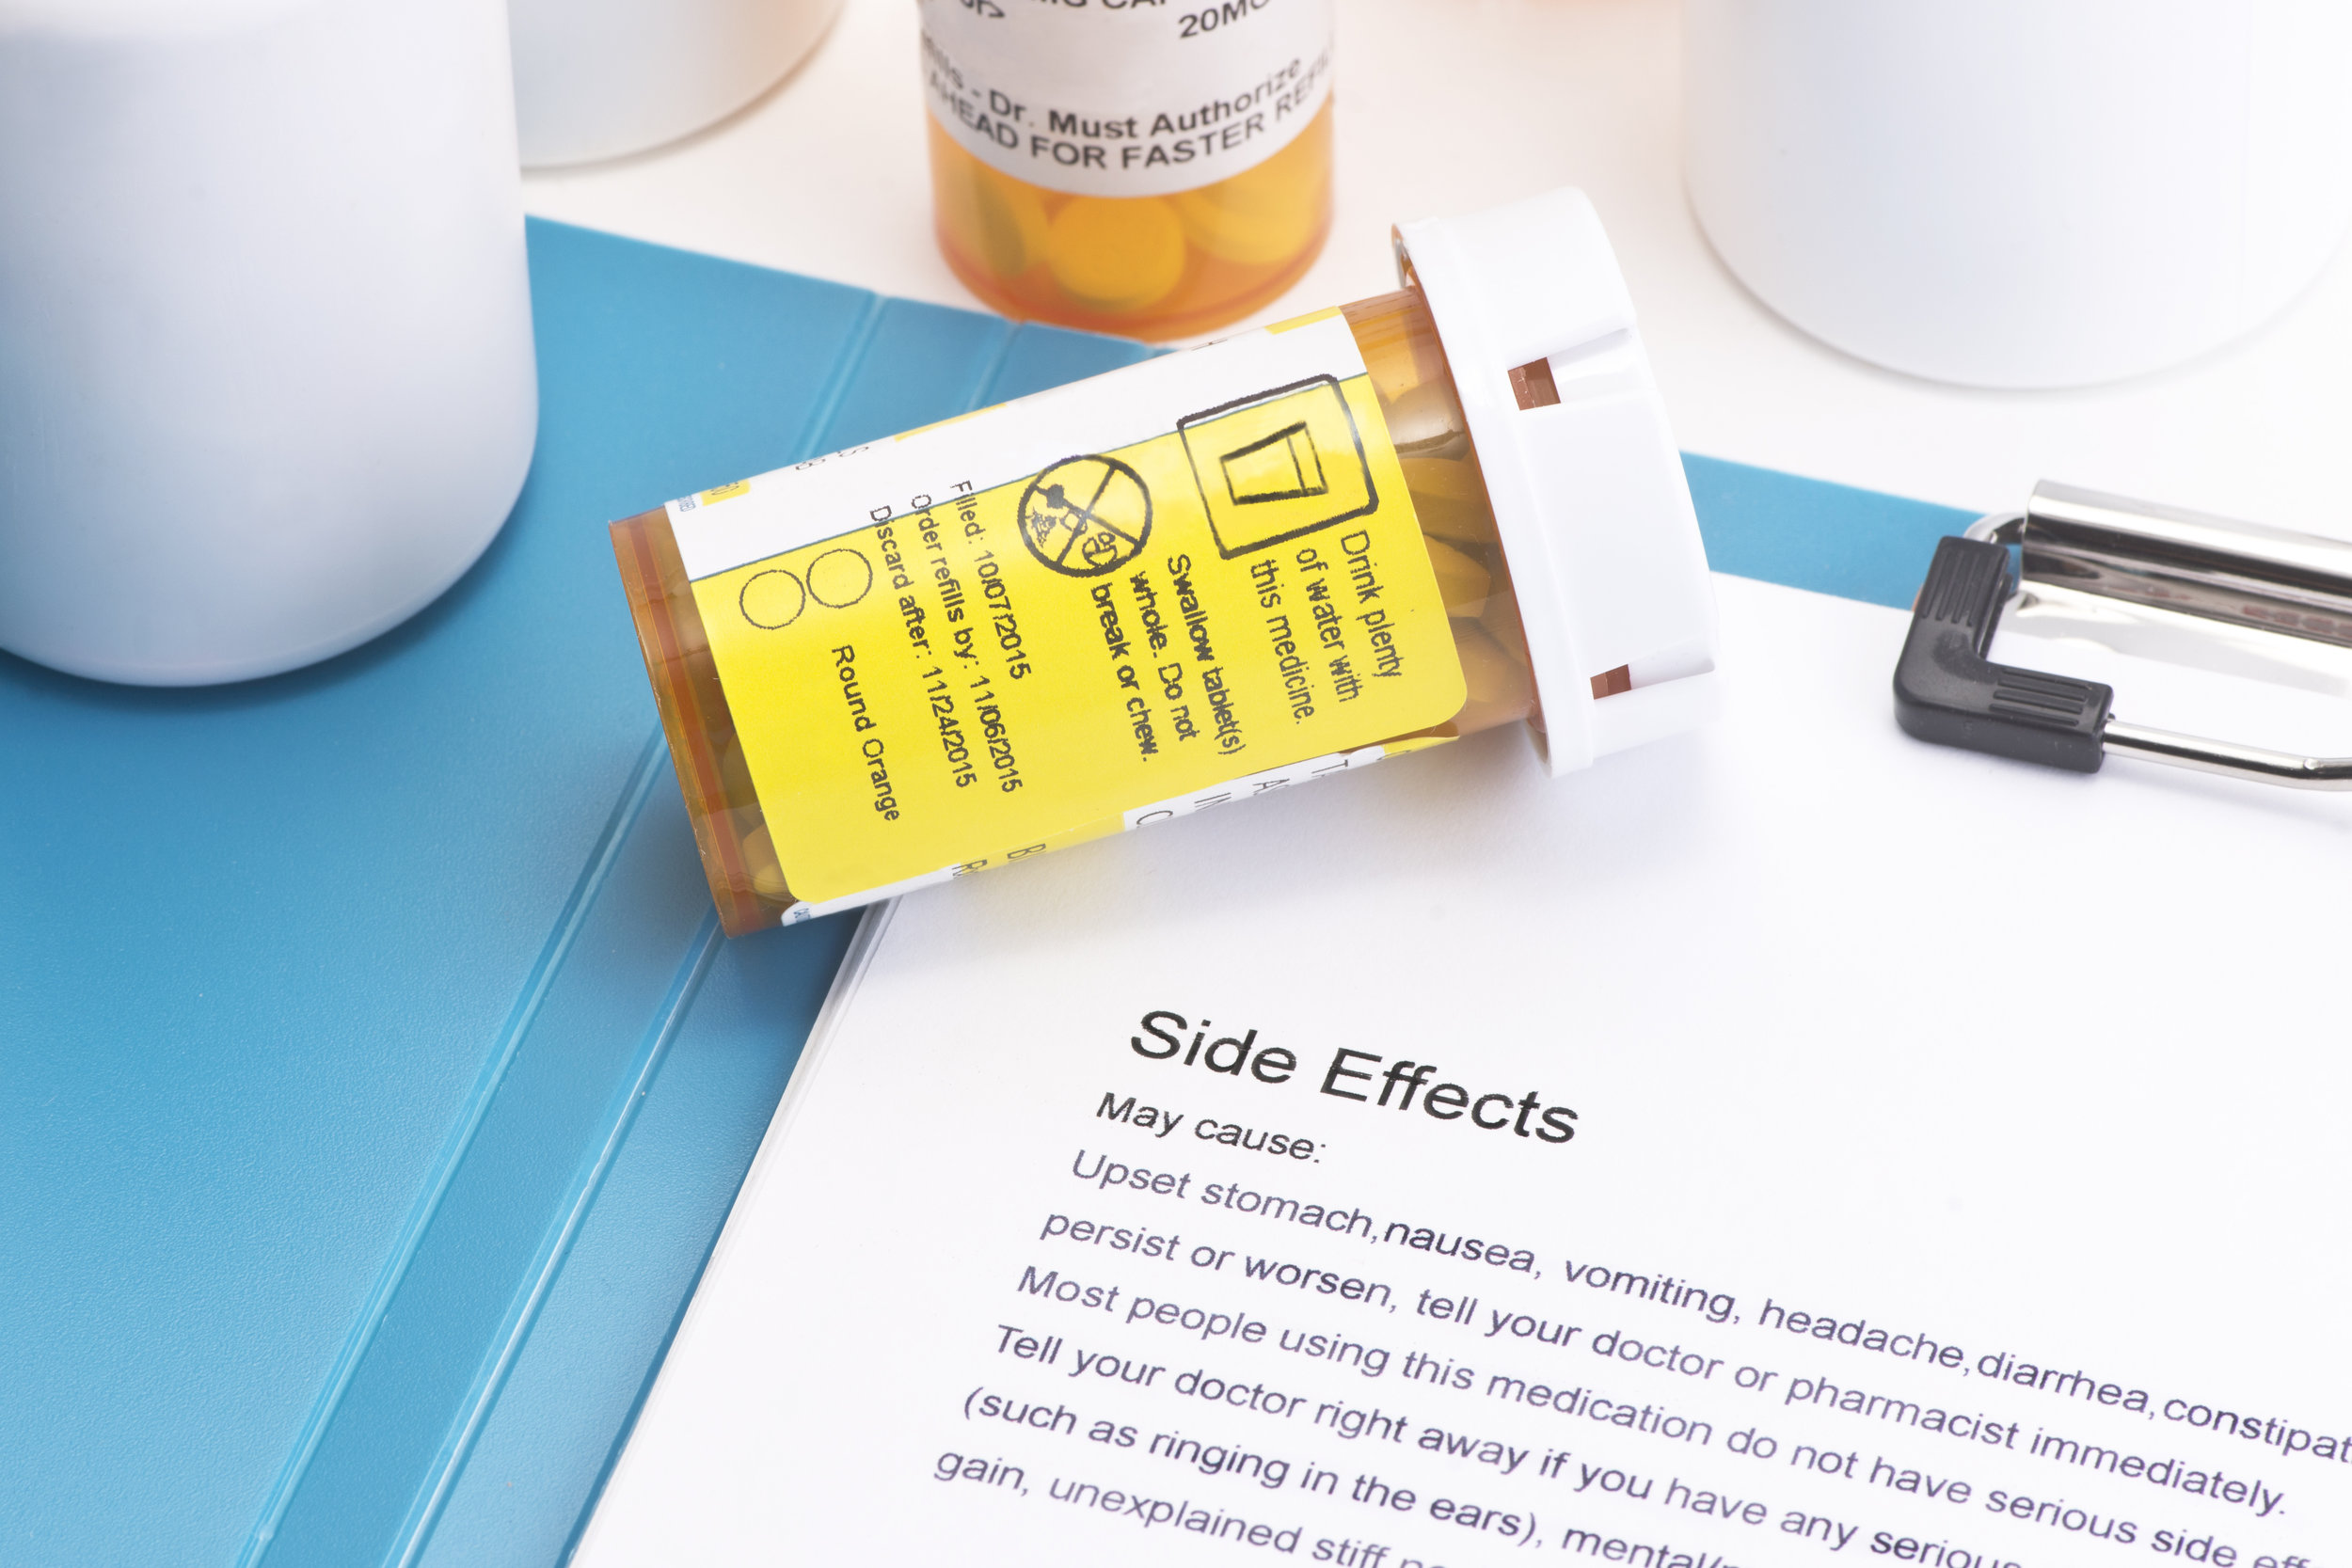 Side effects and harmful effects